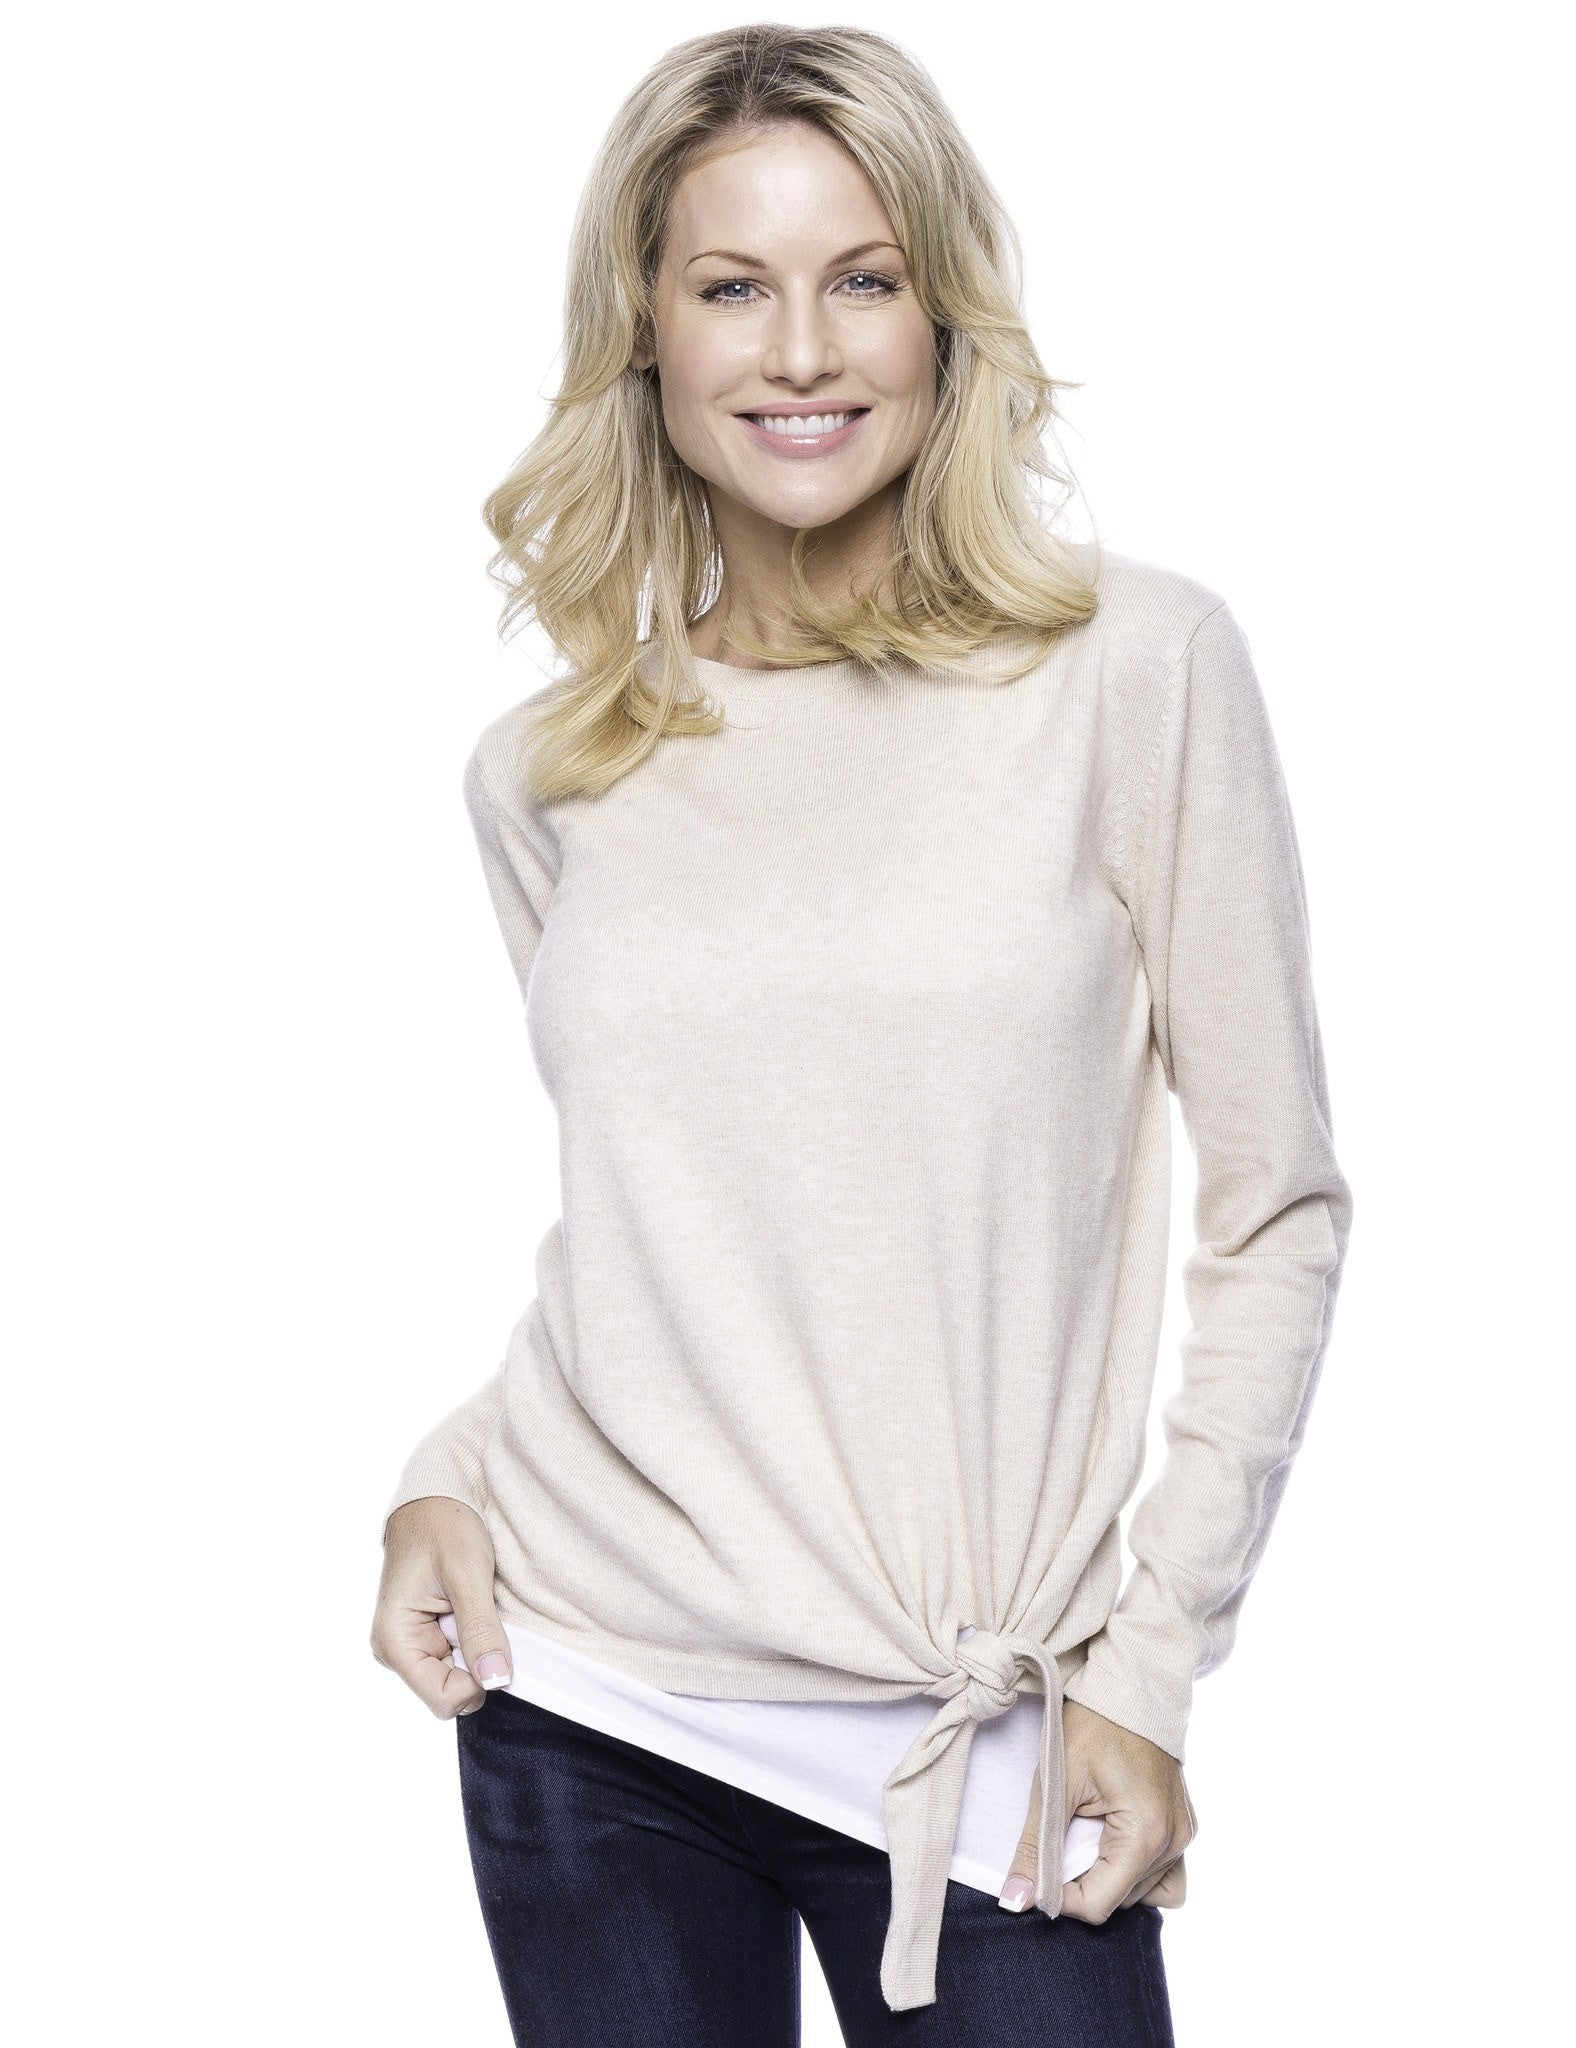 Cashmere Blend Bateau Neck Sweater with Hem Tie - Oatmeal